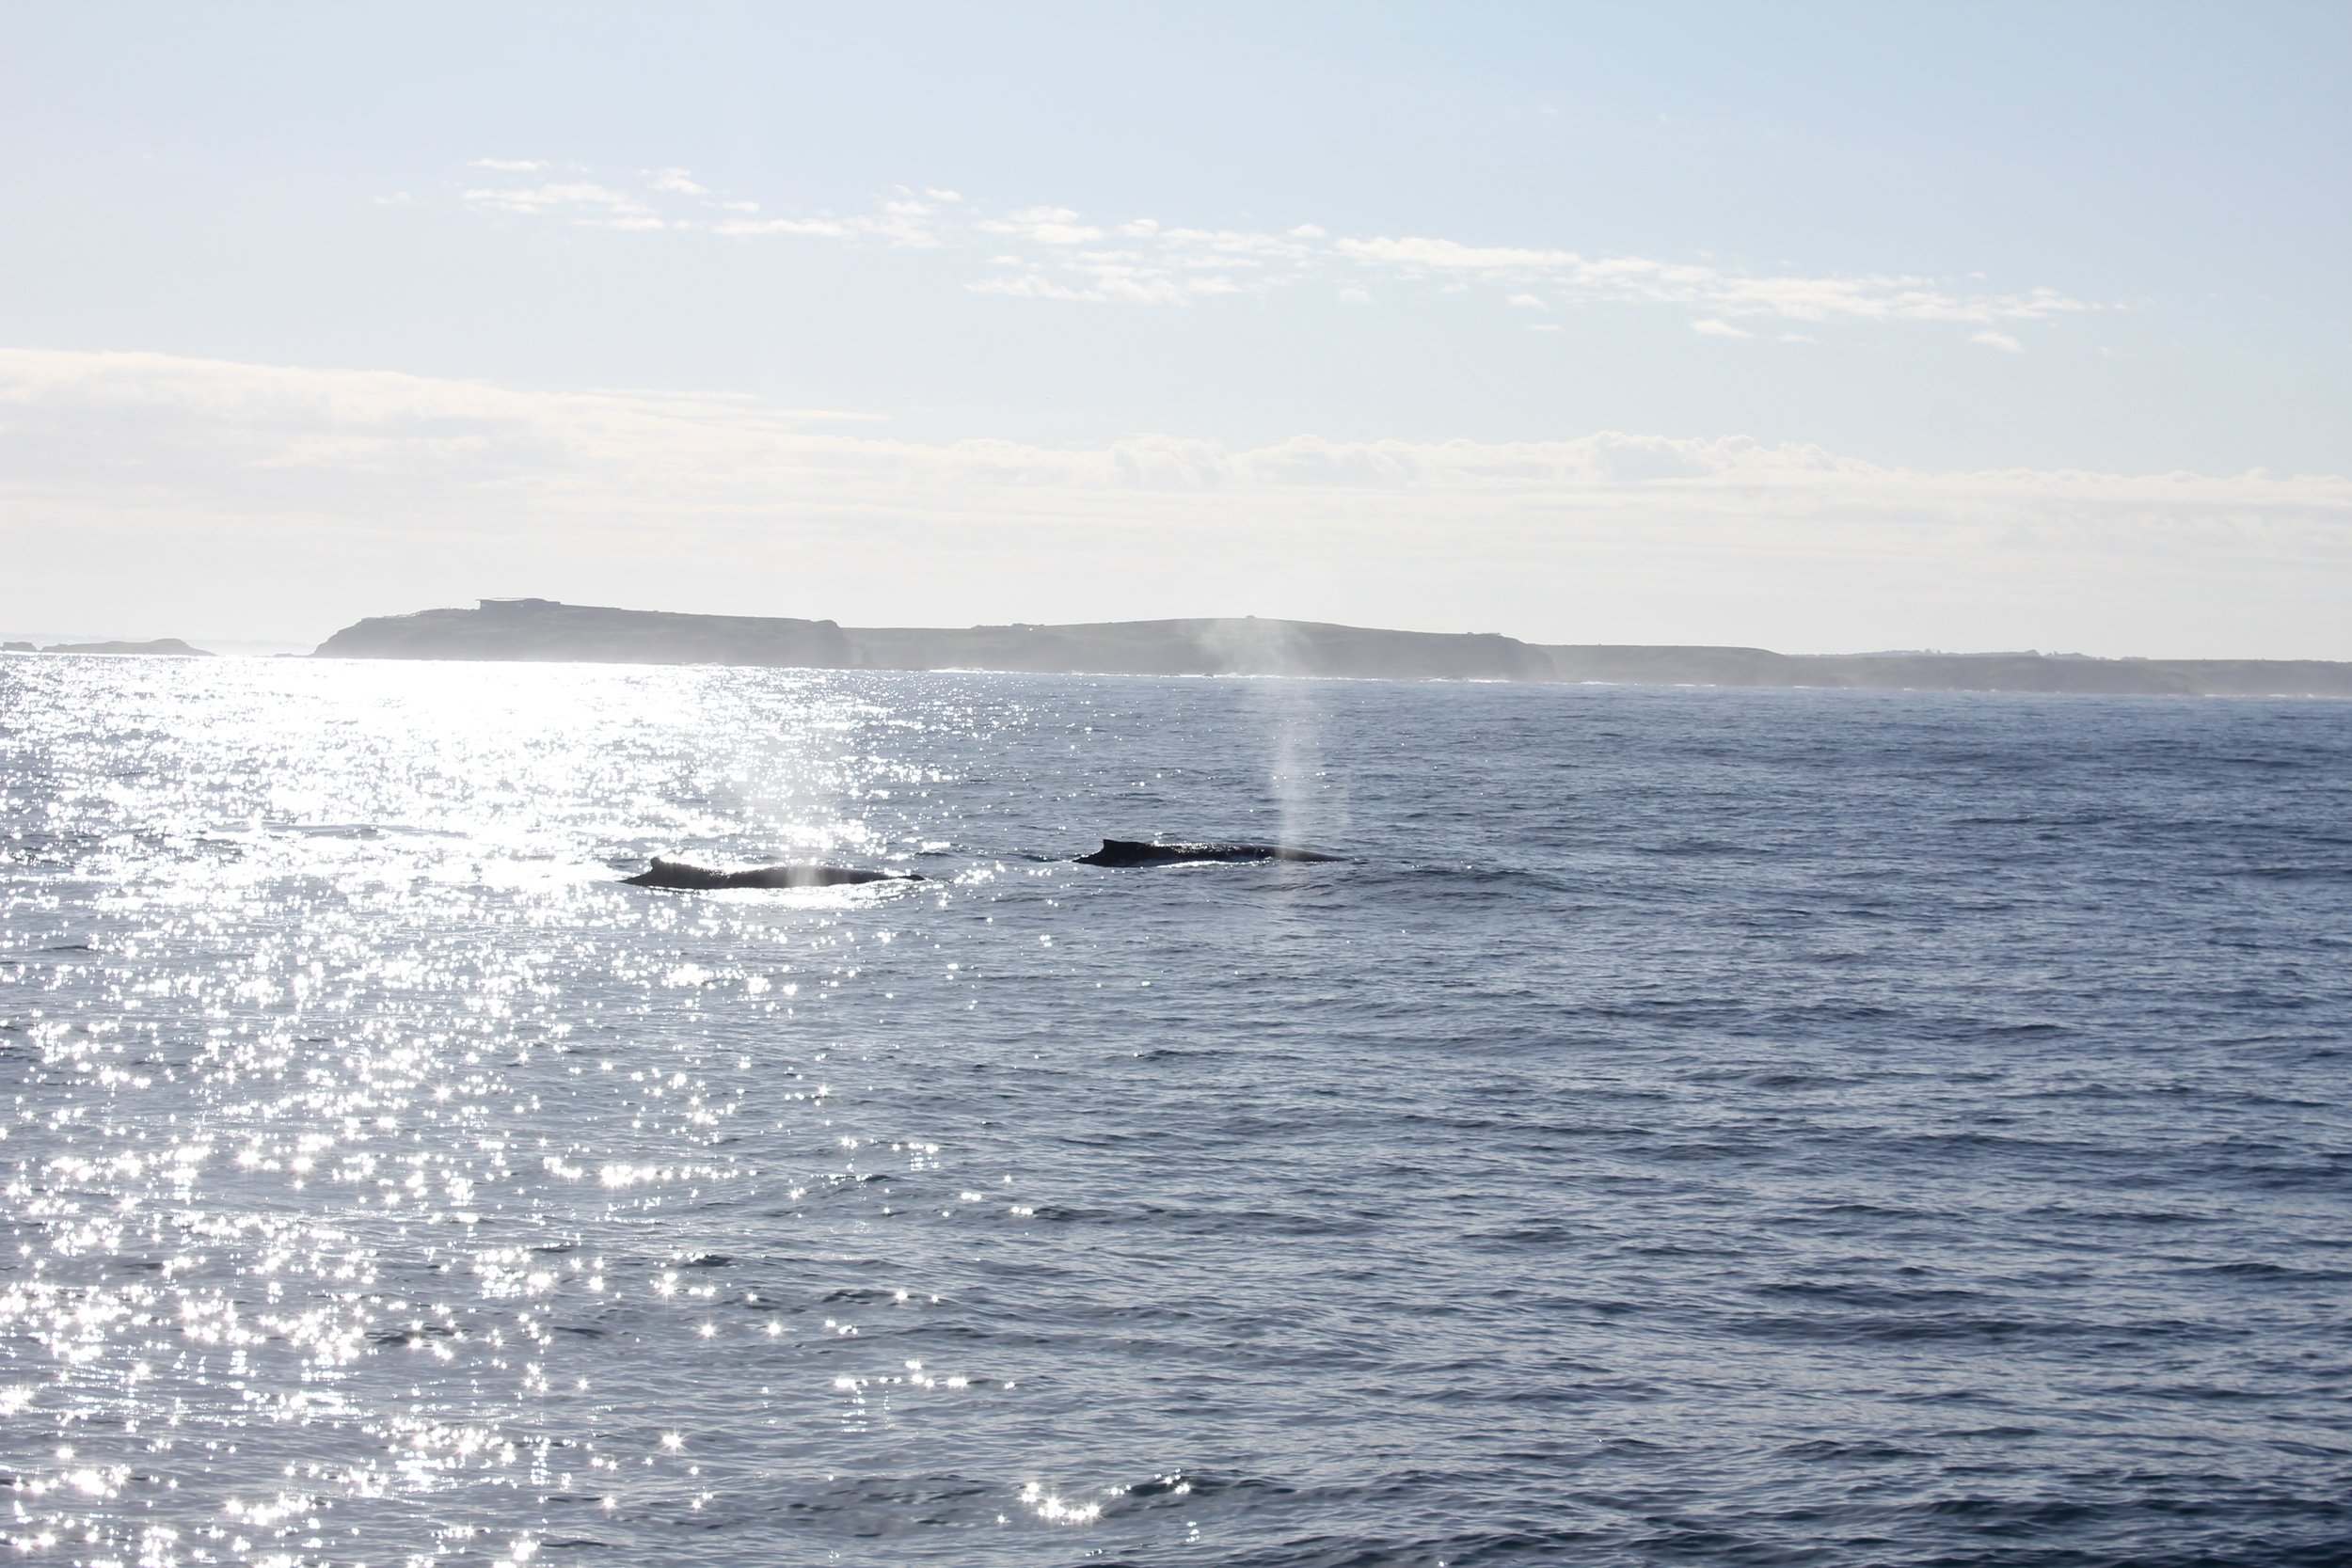 Humpback Whales seen from a distance.  Image: Ella Loeffler